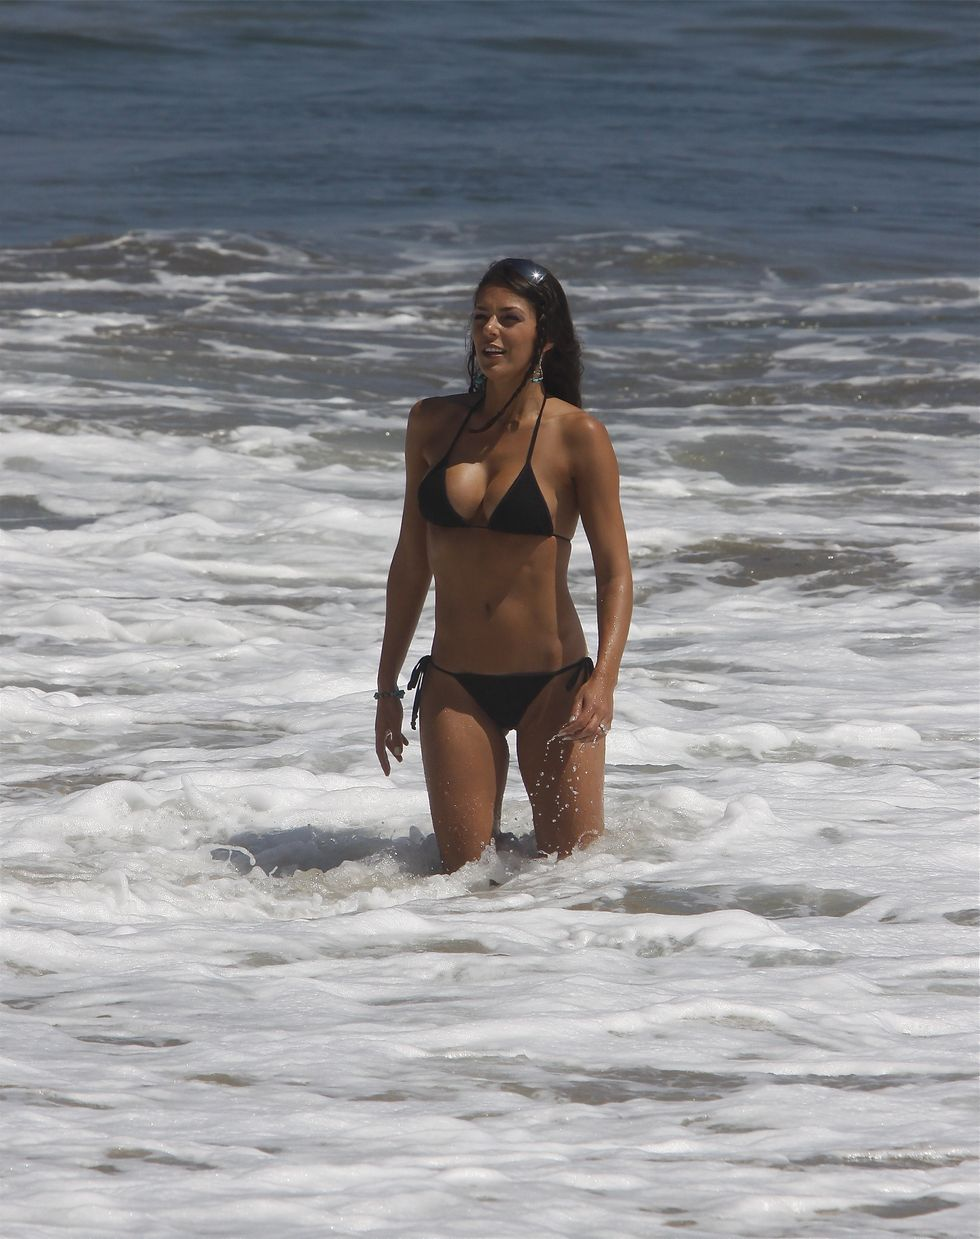 adrianne-curry-in-bikini-on-malibu-beach-01